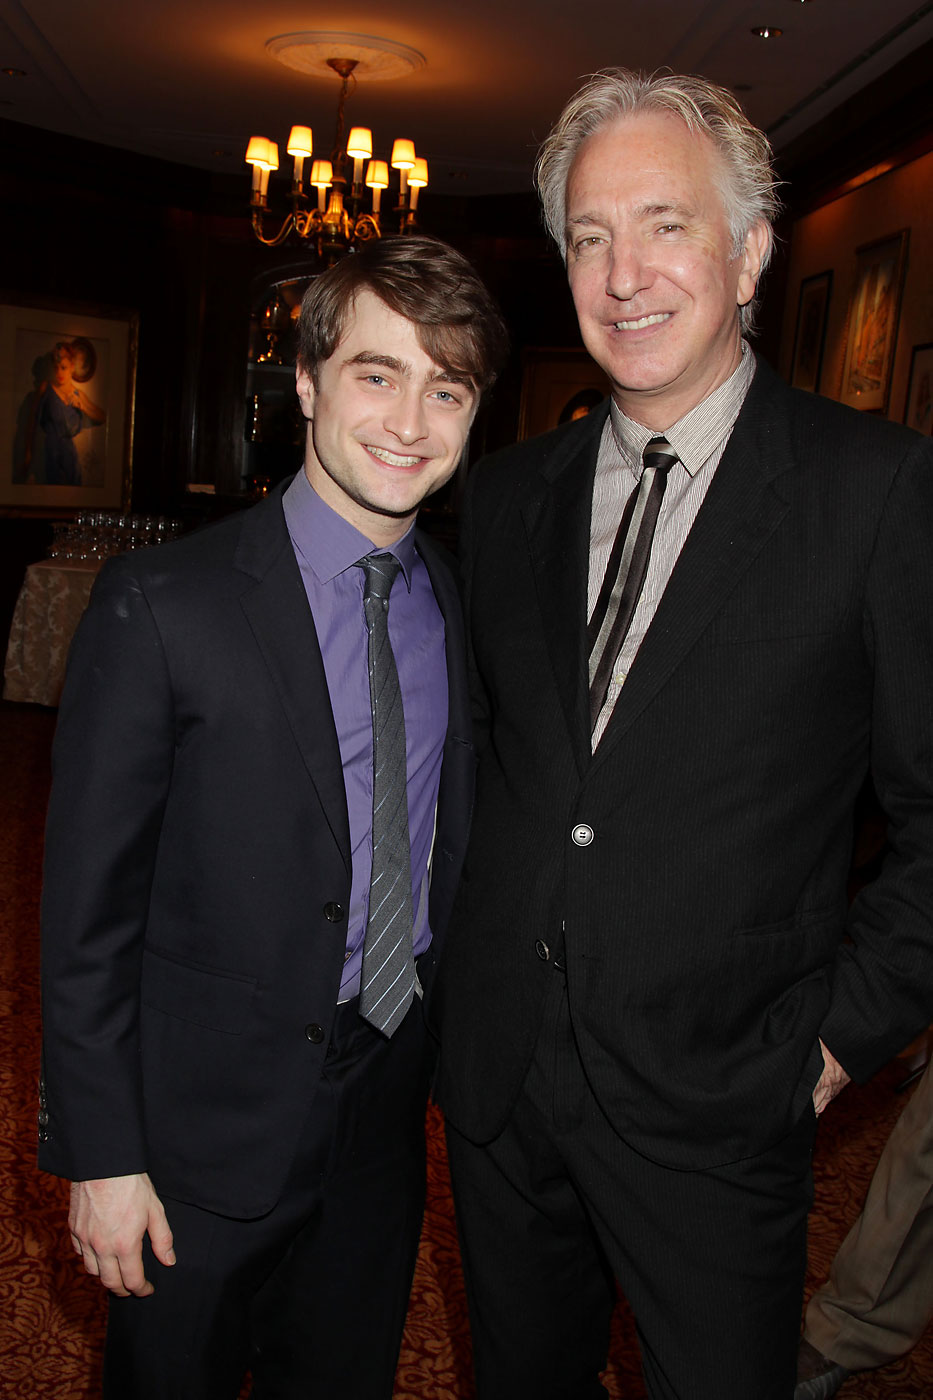 Daniel Radcliffe and Alan Rickman at a luncheon for  Harry Potter and the Deathly Hallows Part 2,  at 21 Club, Monday, Nov. 21, 2011, in New York.